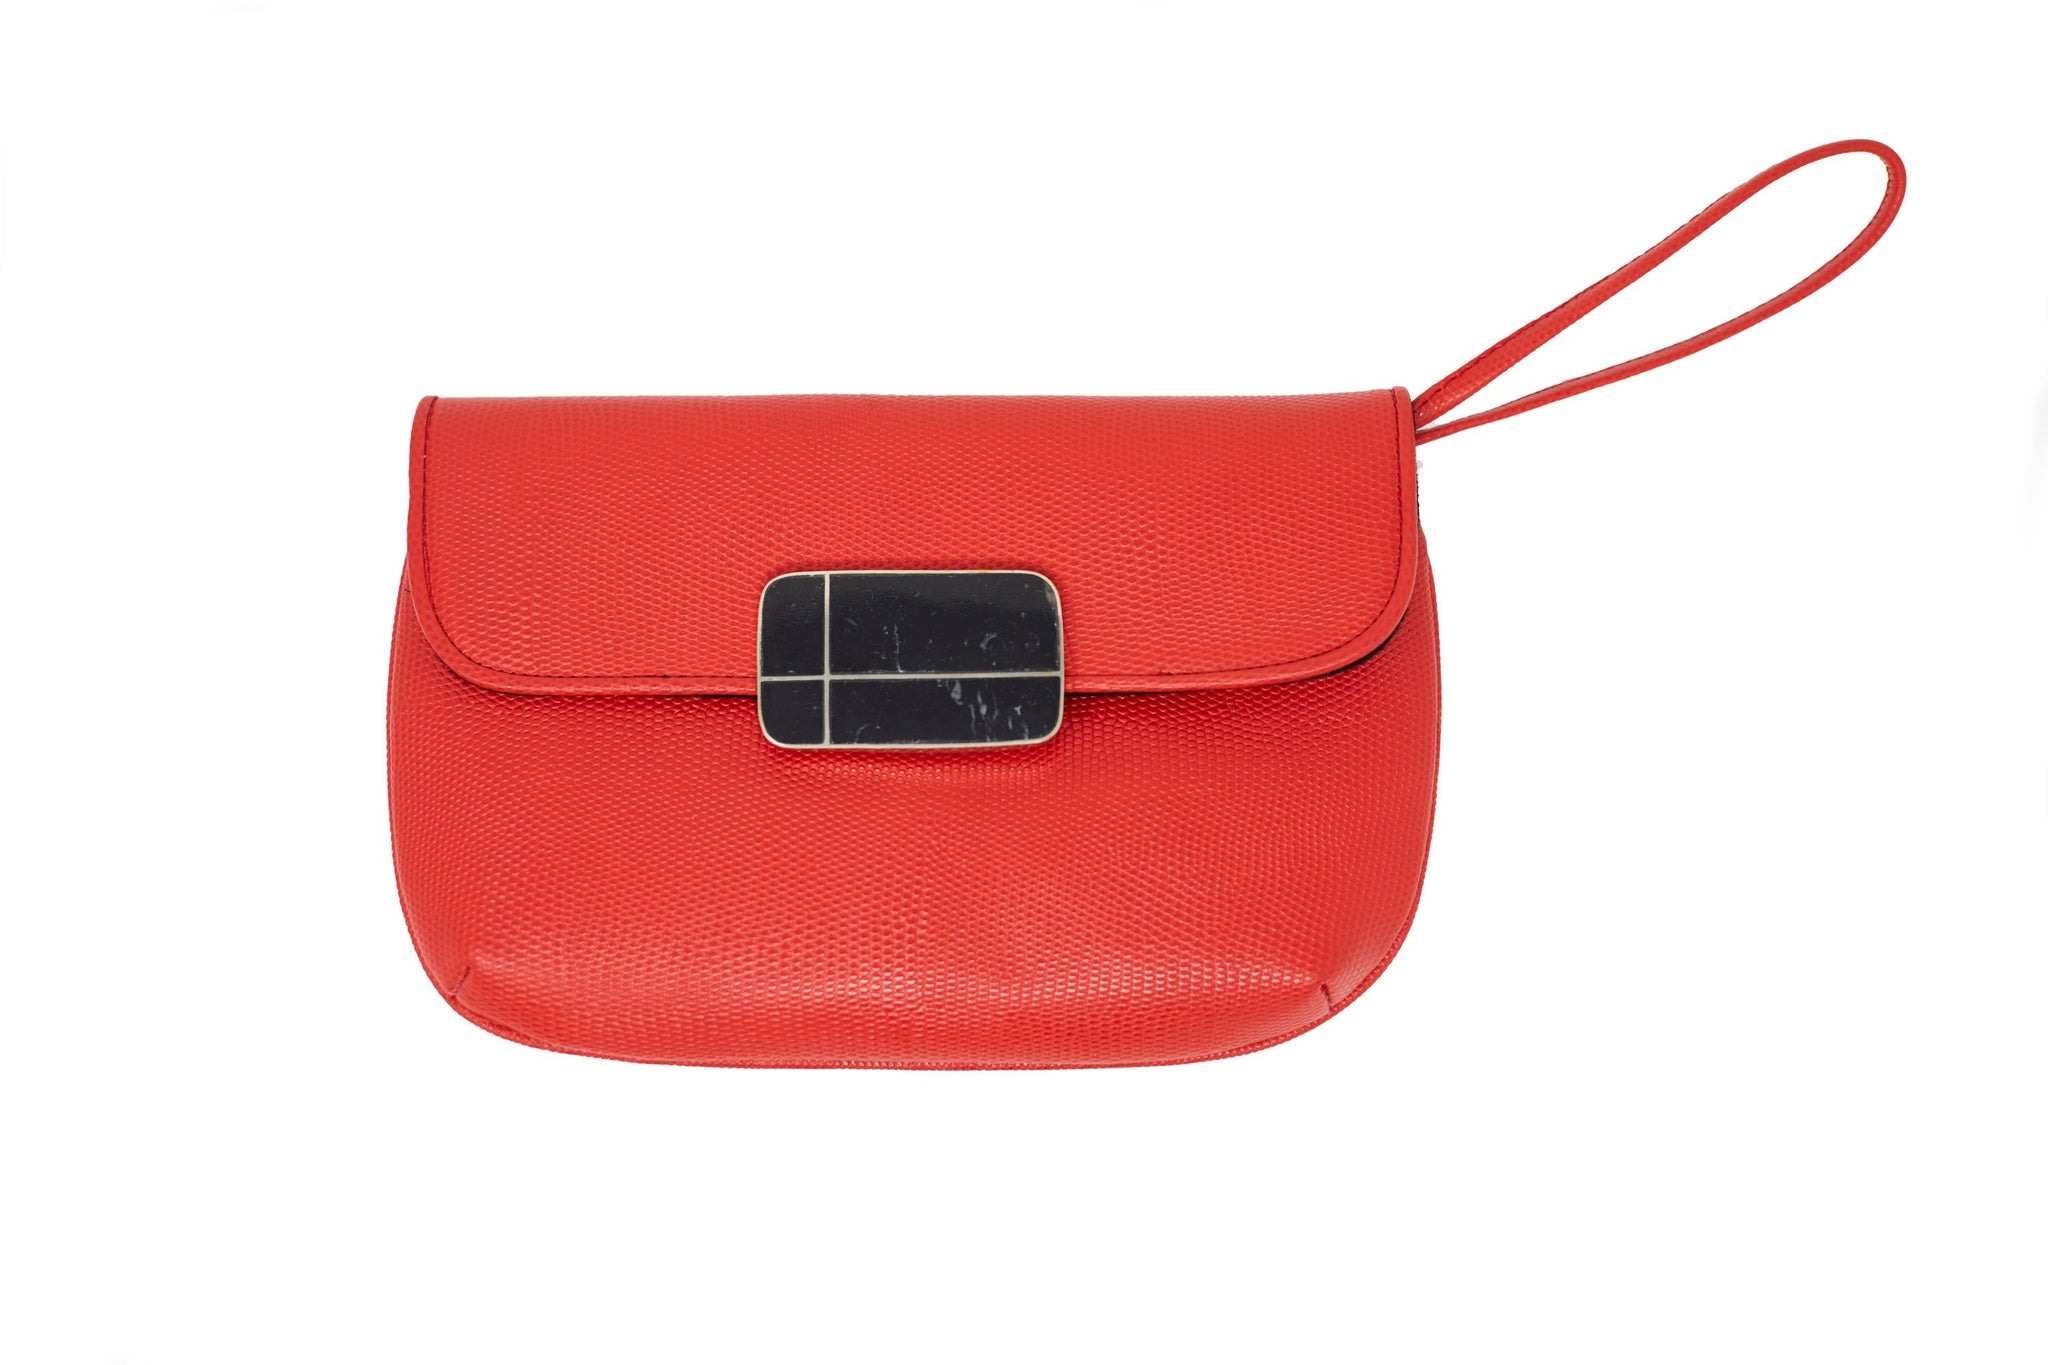 Red Nite Leather Clutch Wristlet